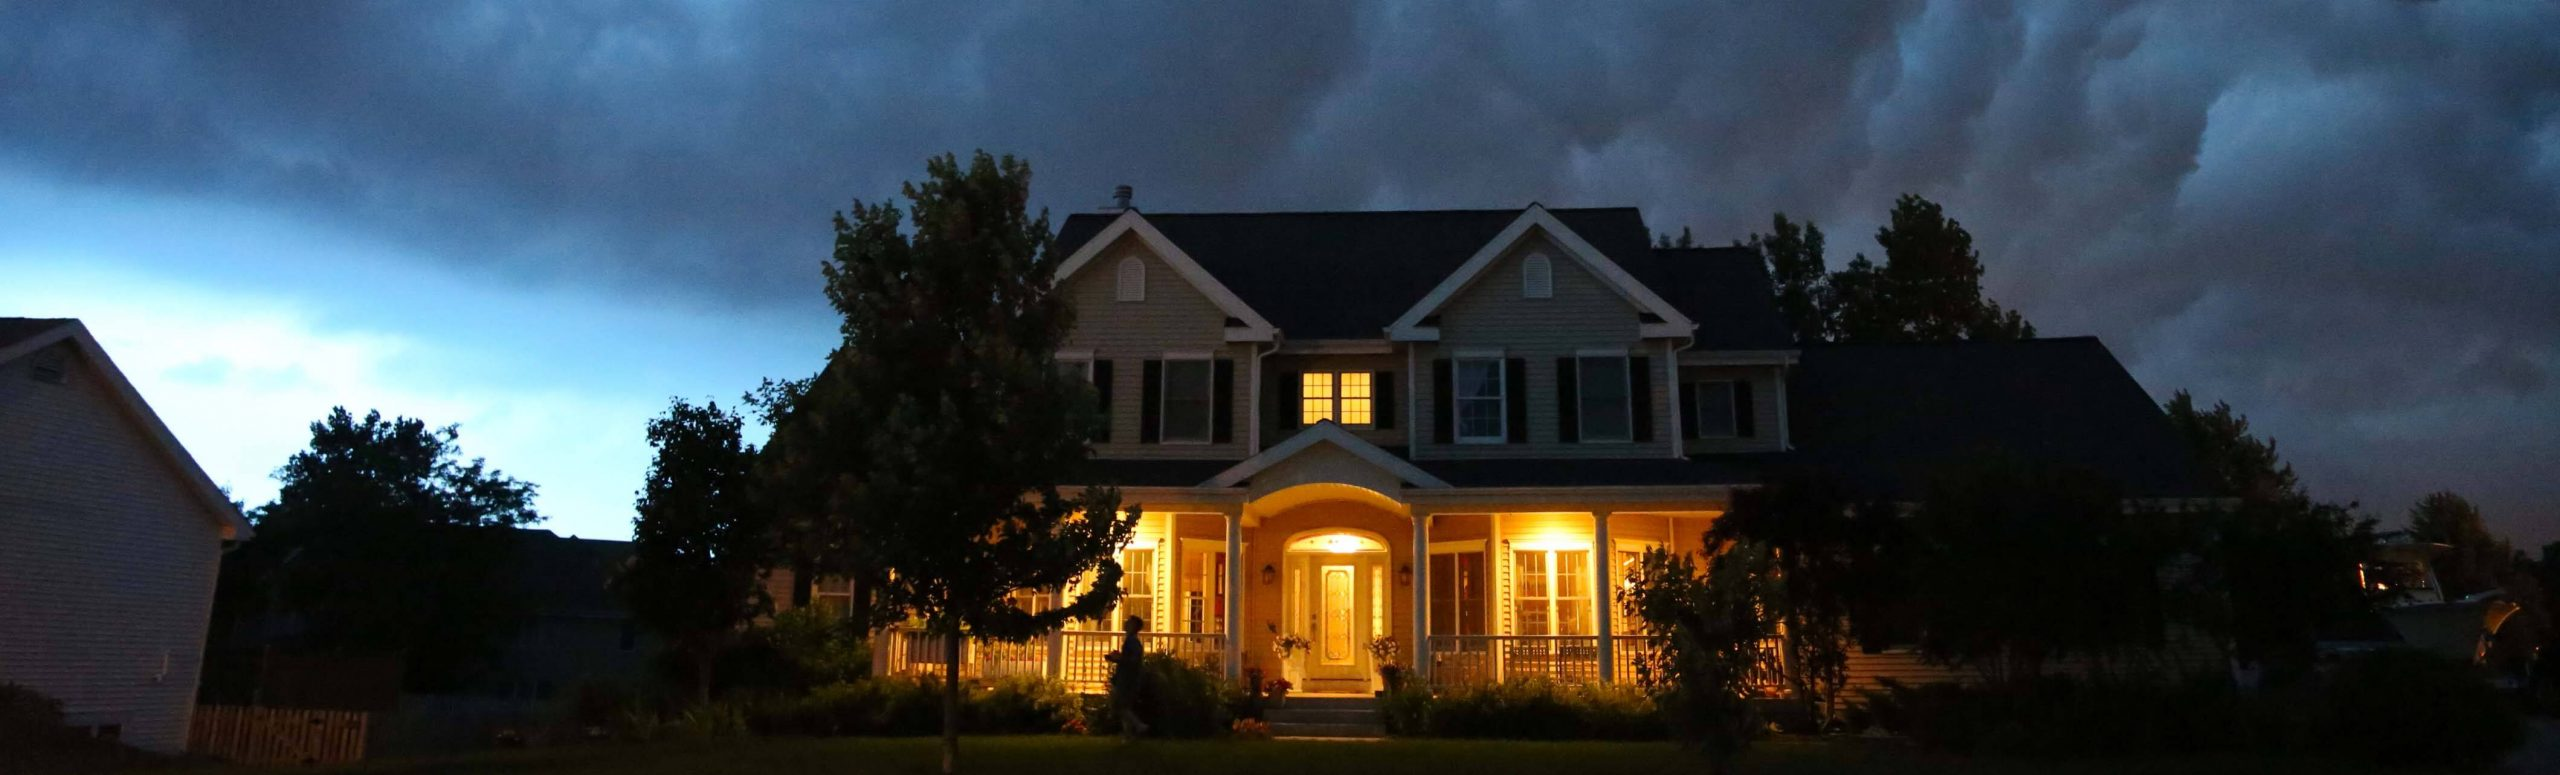 Exterior of a house with dark storm clouds overhead